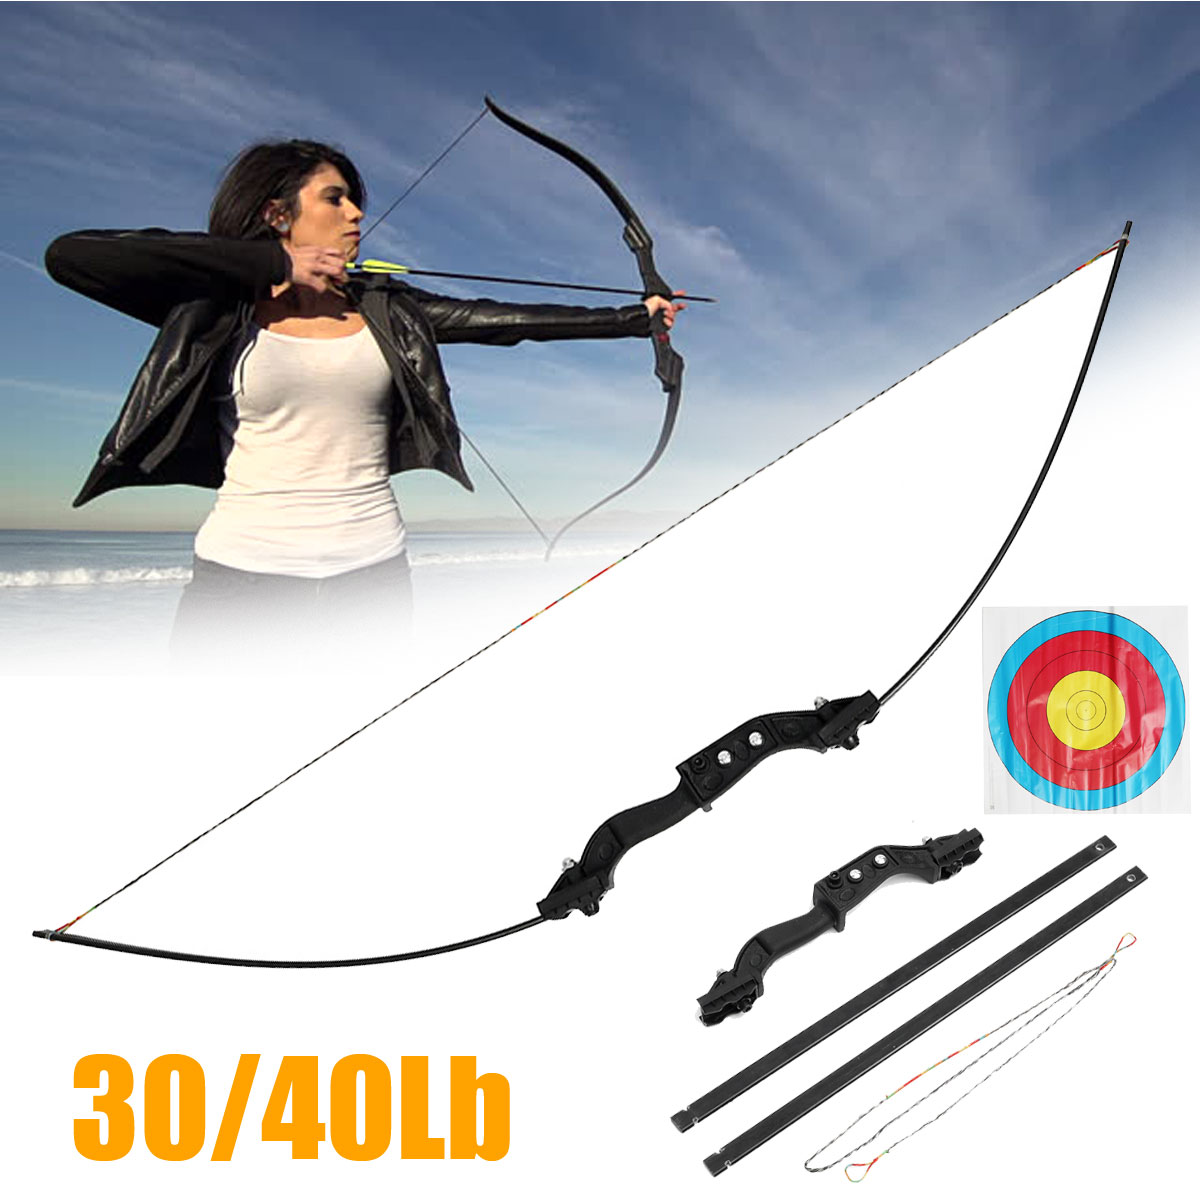 30/40l LbS Archery Hunting Bow Carbon Steel Metal Novice Bow Outdoor Hunting Shooting Entertainment hot sale children compound bow draw weight 8 12 lbs for archery practice competition games bow target hunting shooting